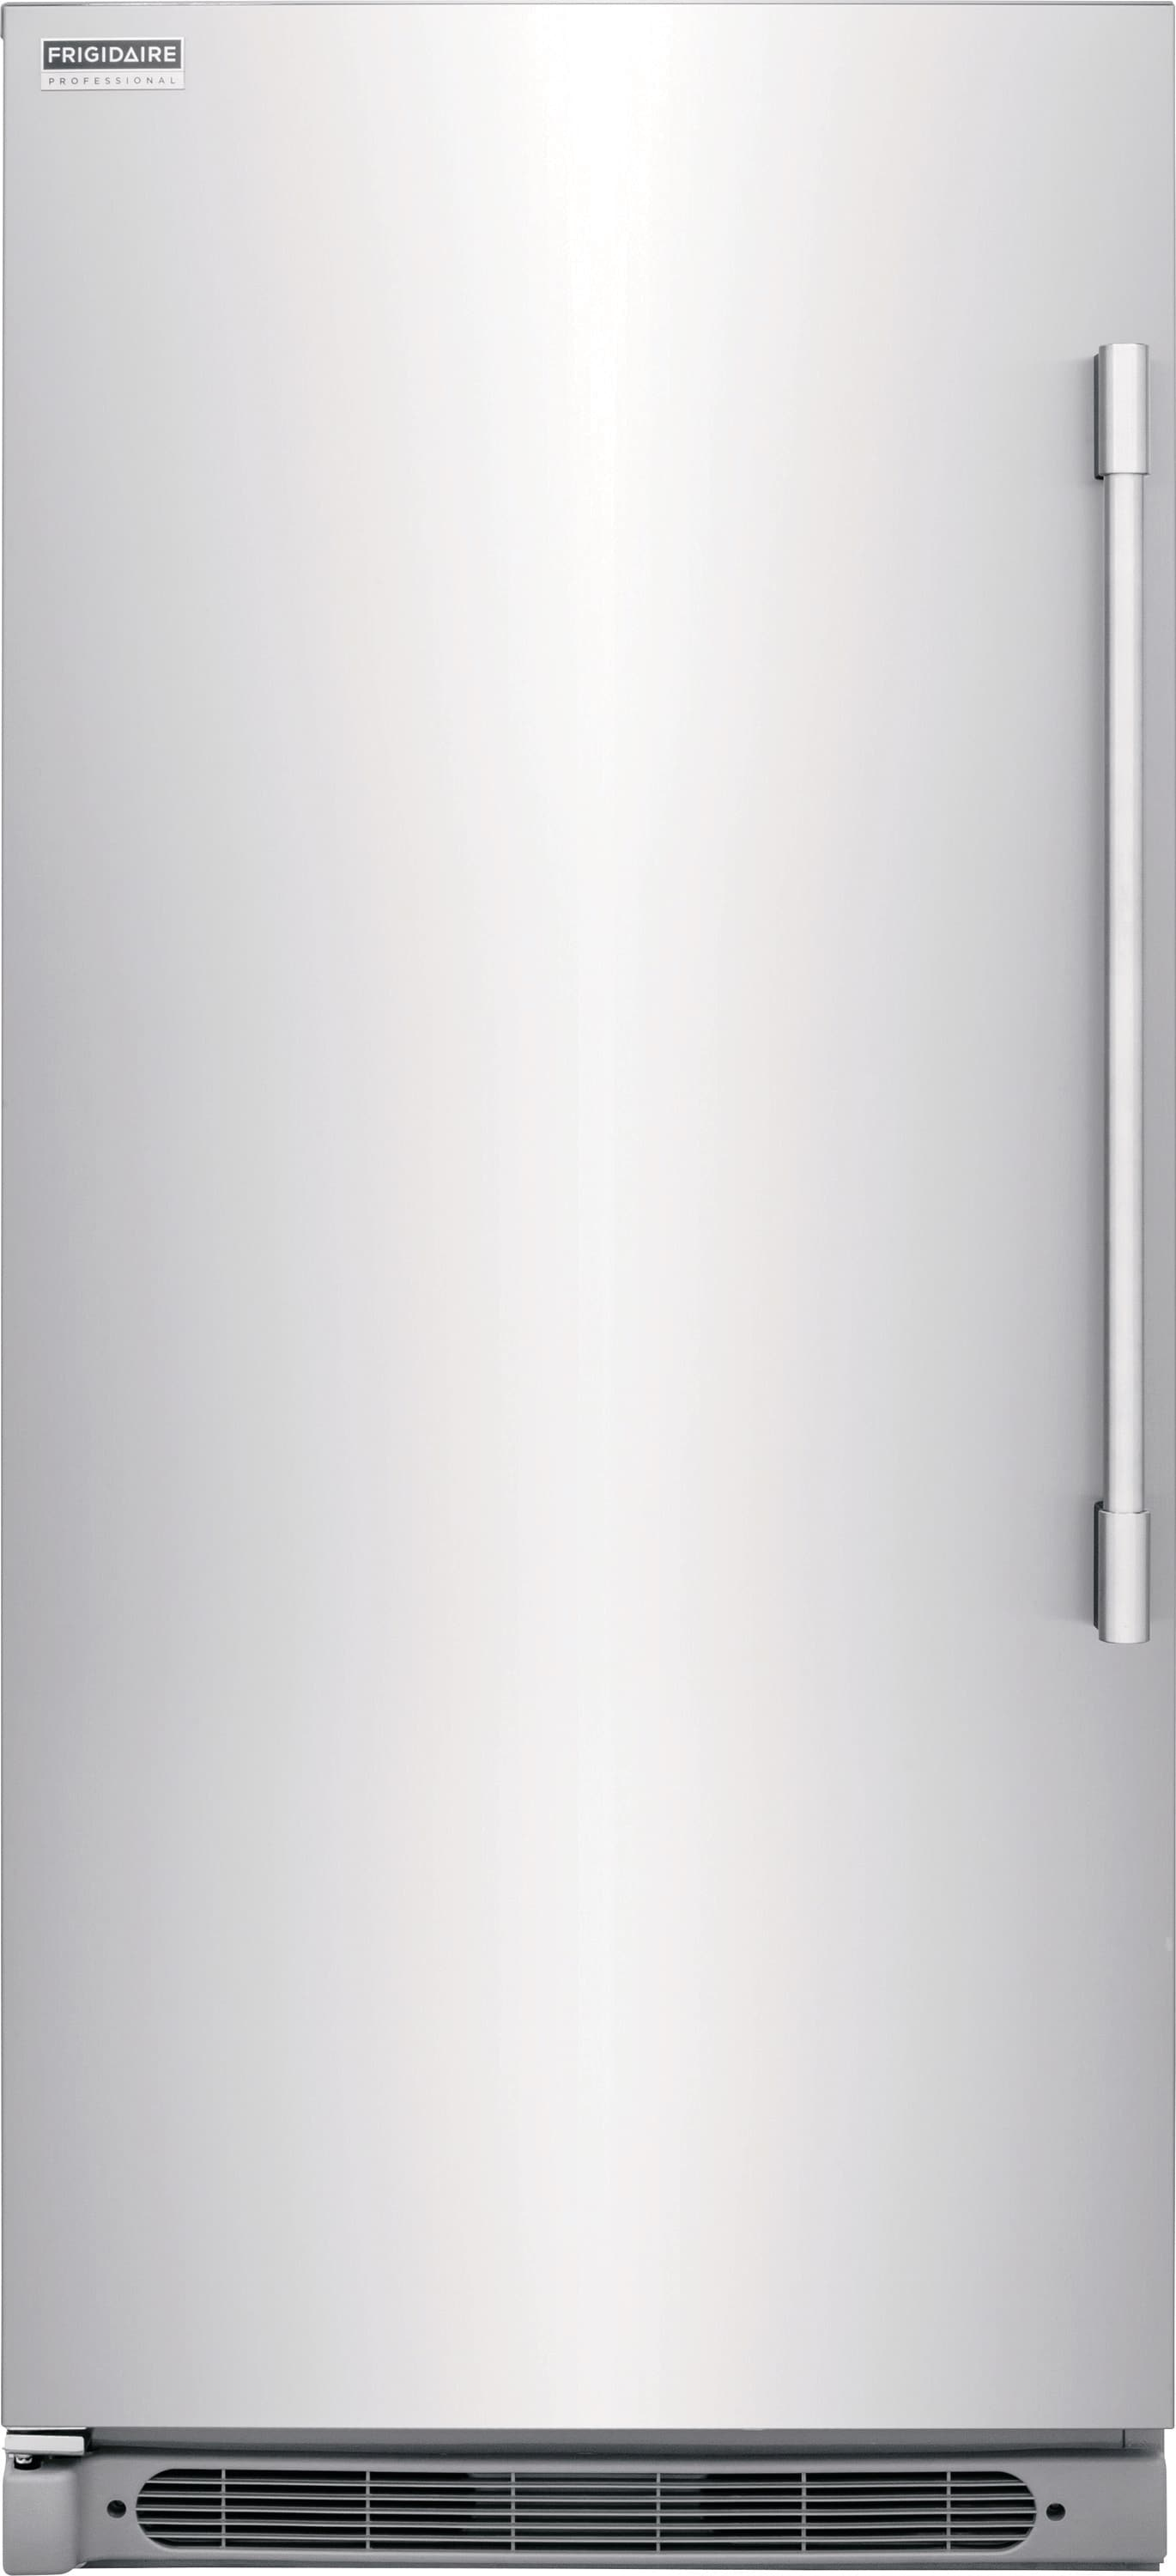 Frigidaire 19 Cu. Ft. All Freezer